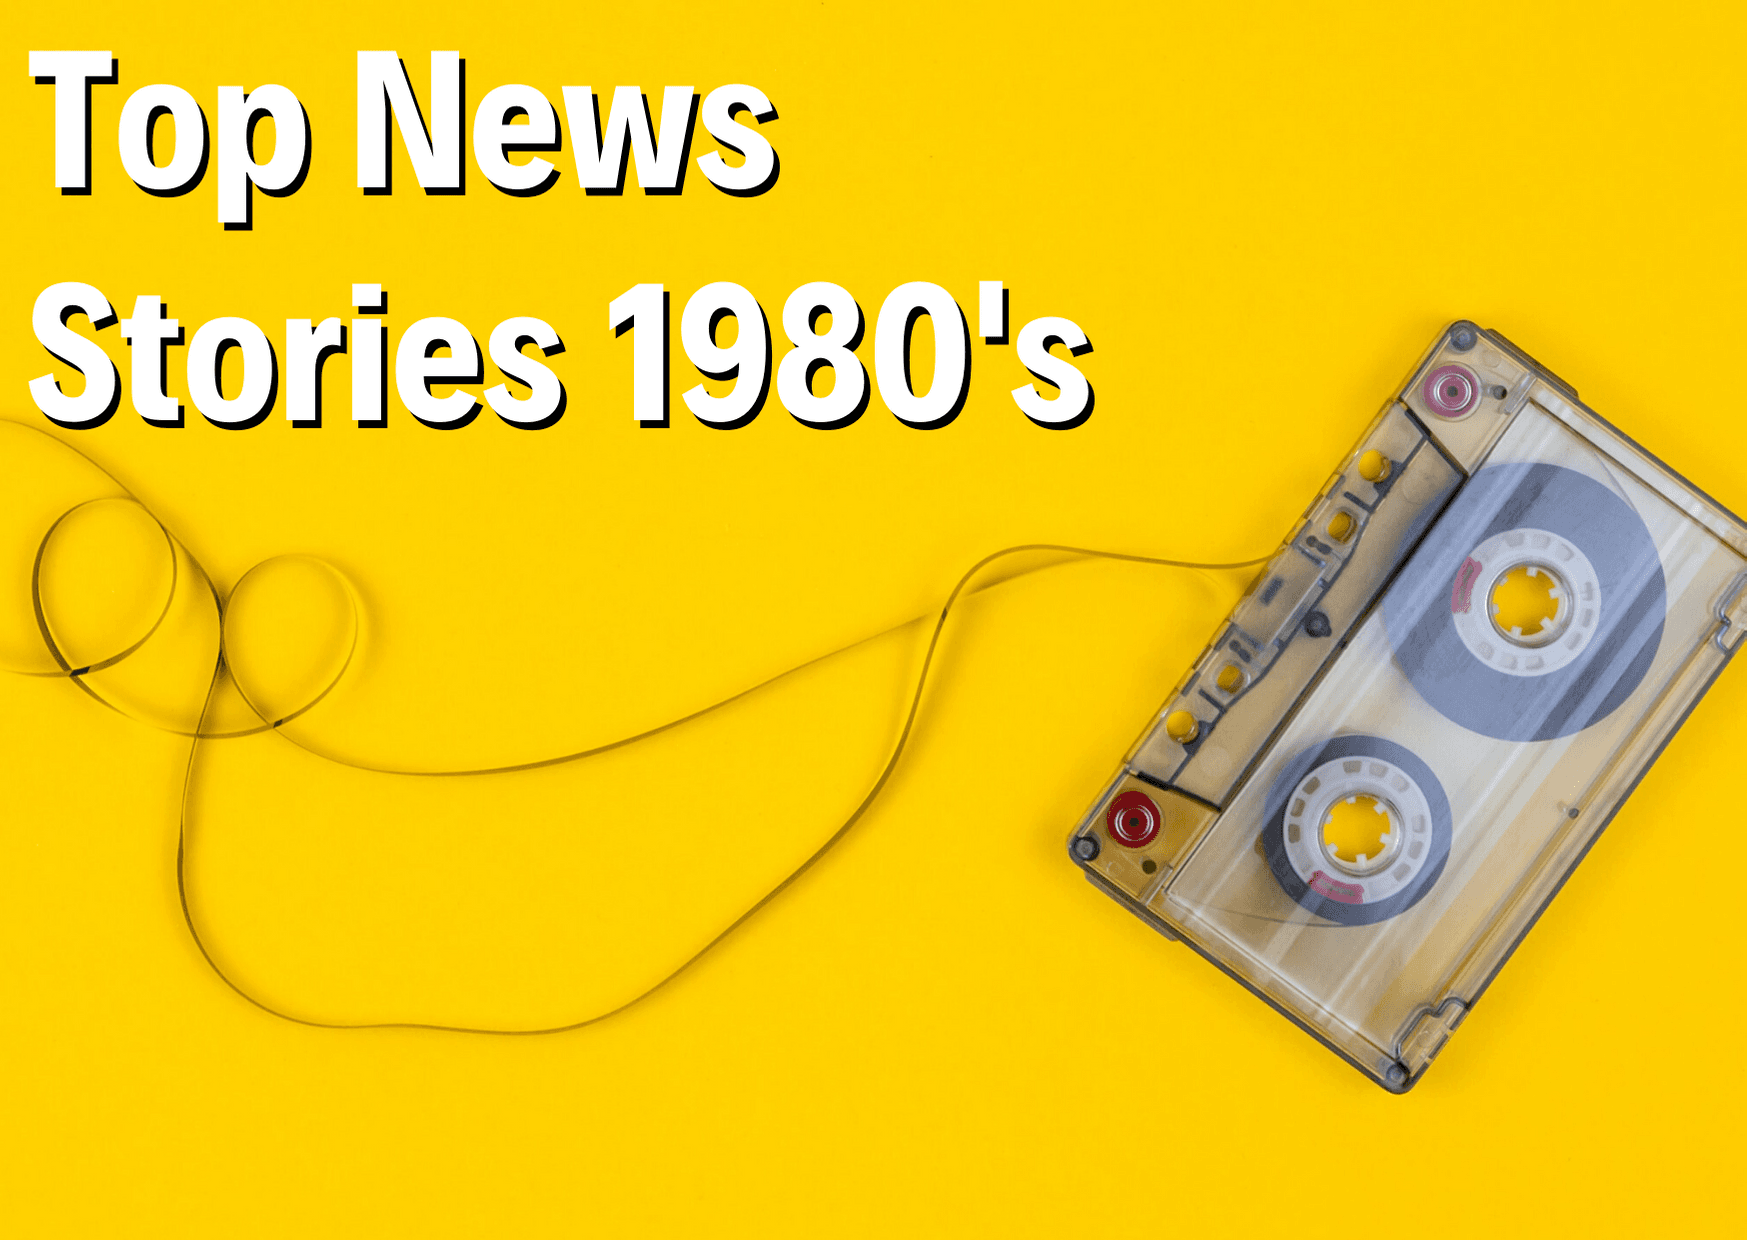 1980s News Opens in new window